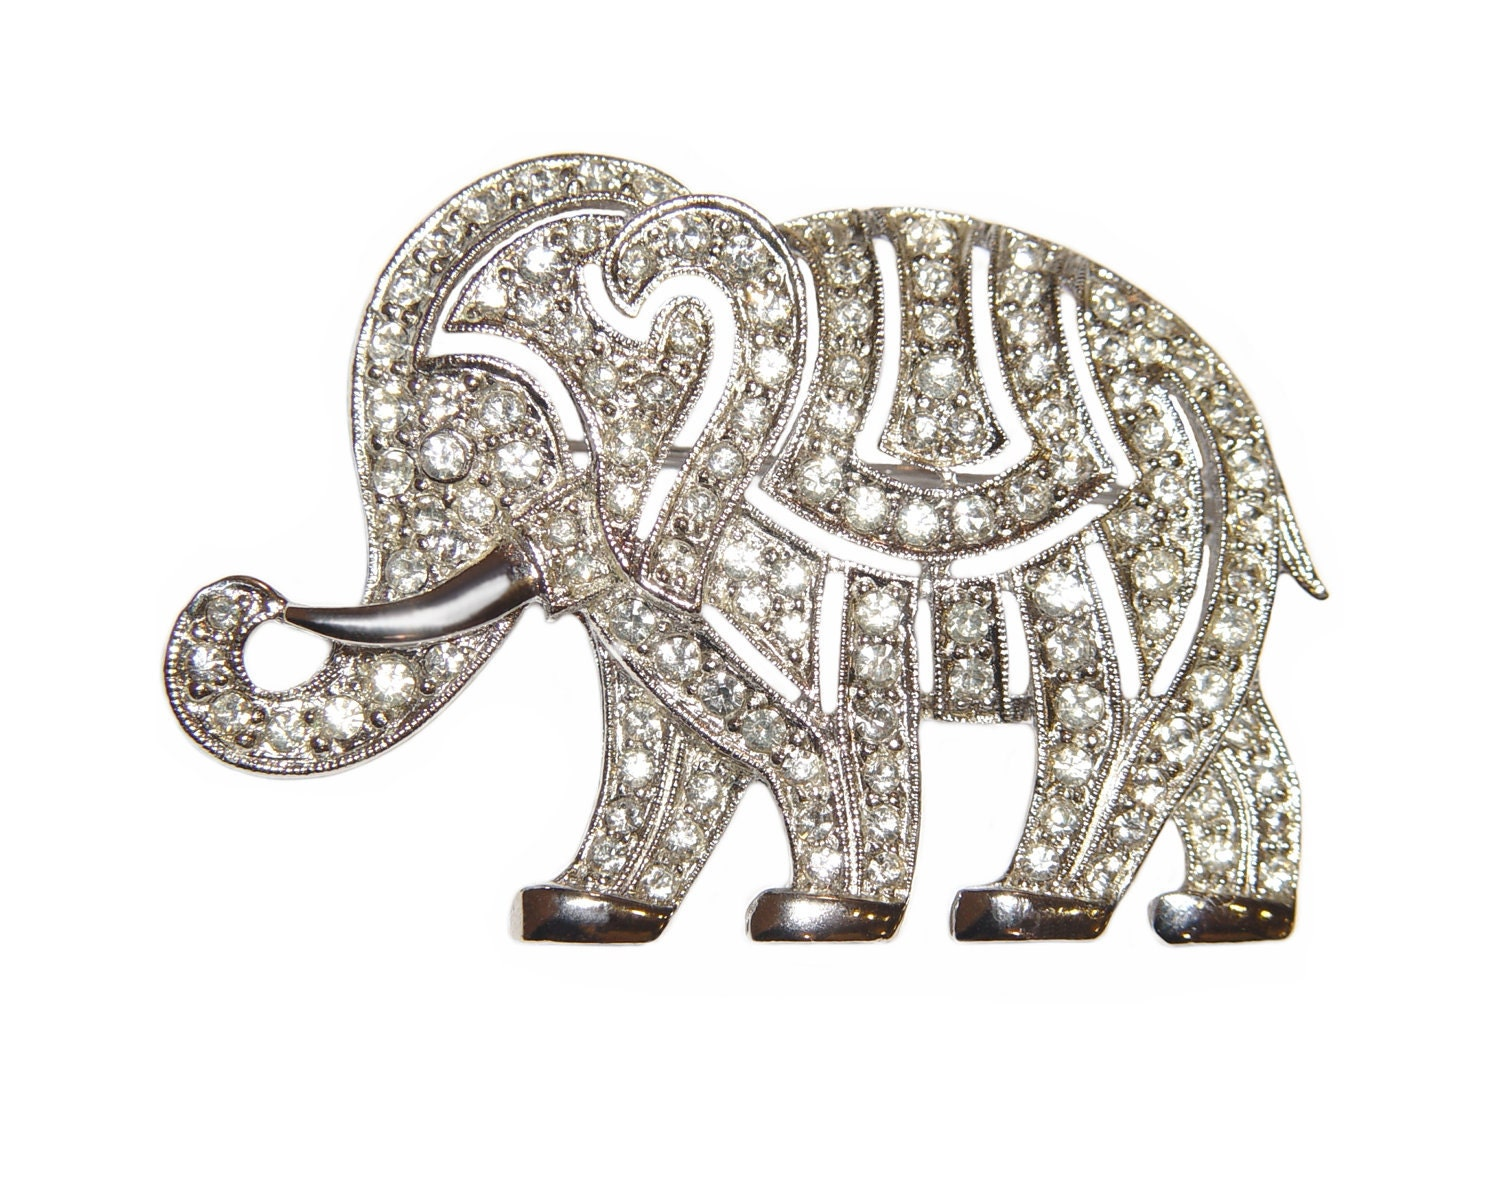 hattie carnegie brooch elephant art deco rhinestone signed. Black Bedroom Furniture Sets. Home Design Ideas